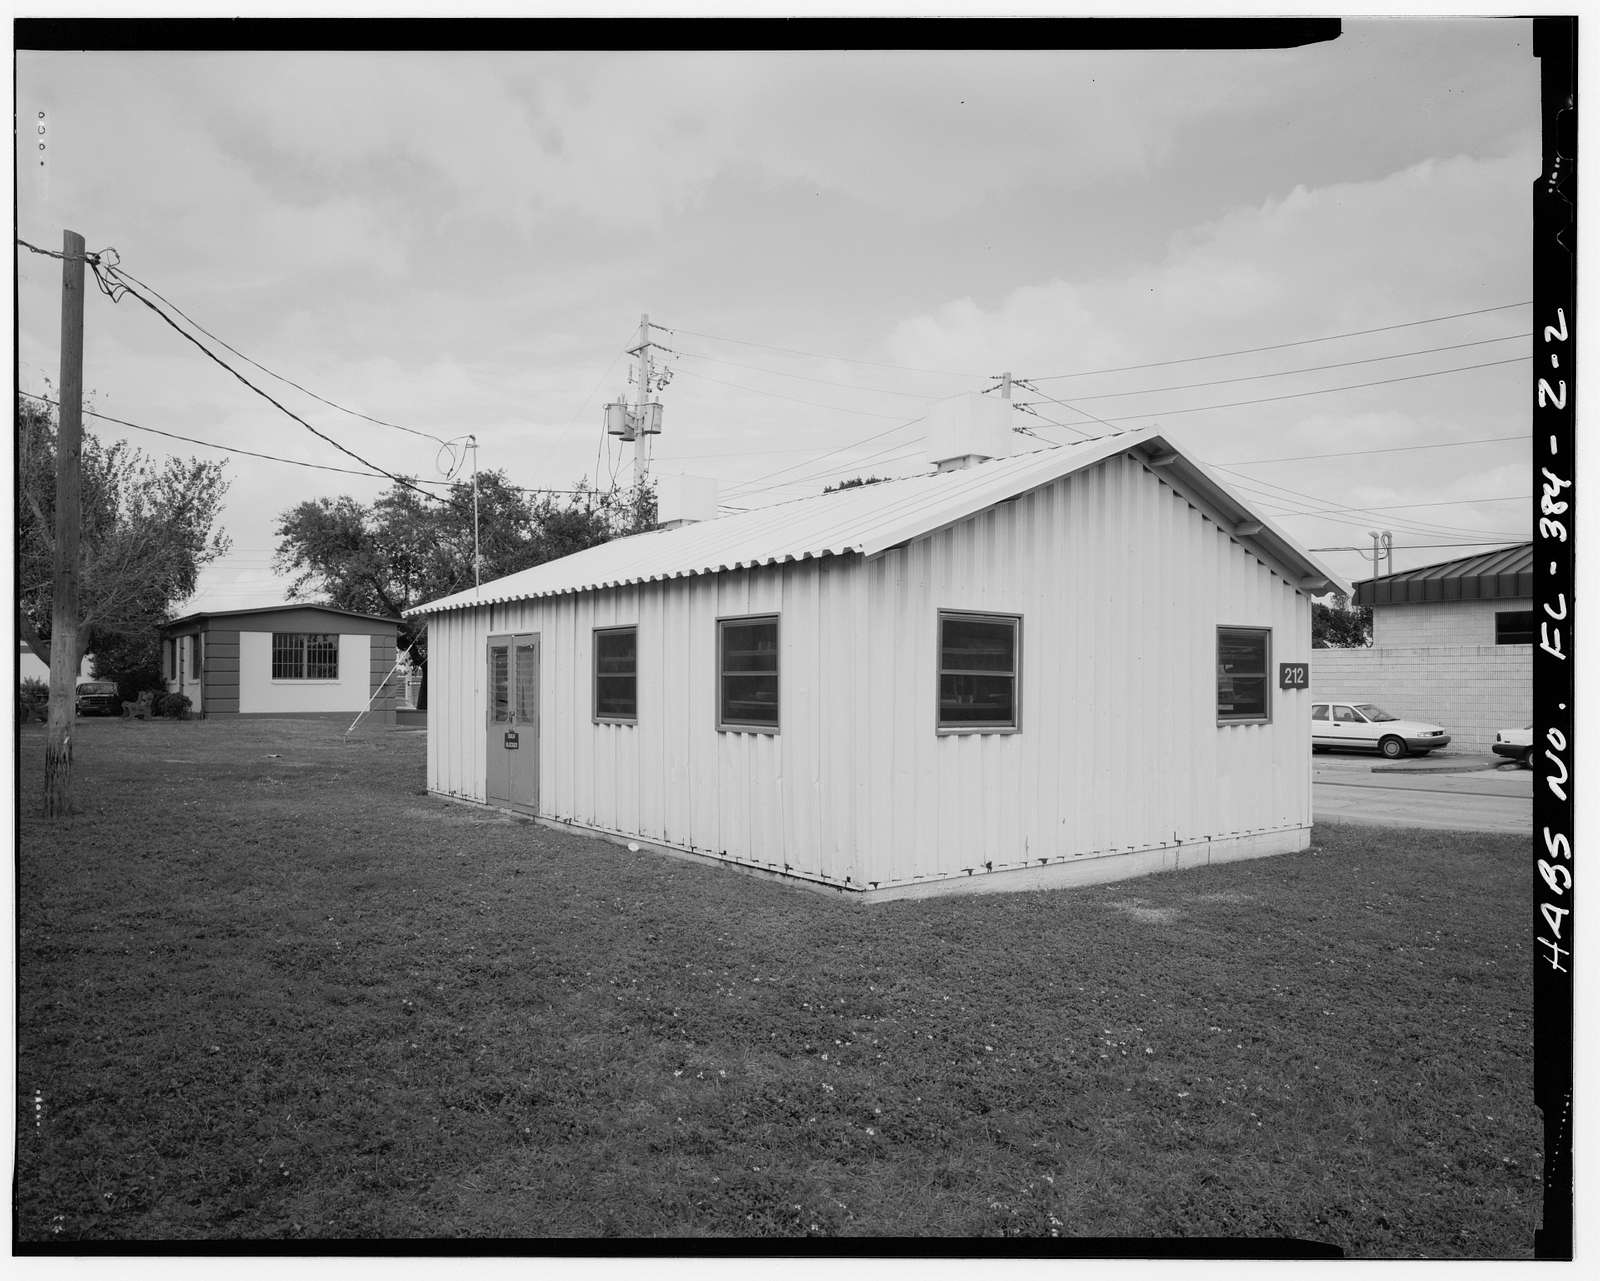 MacDill Air Force Base, Storage Shed, Hanger Loop Drive & Pelican Place, Tampa, Hillsborough County, FL